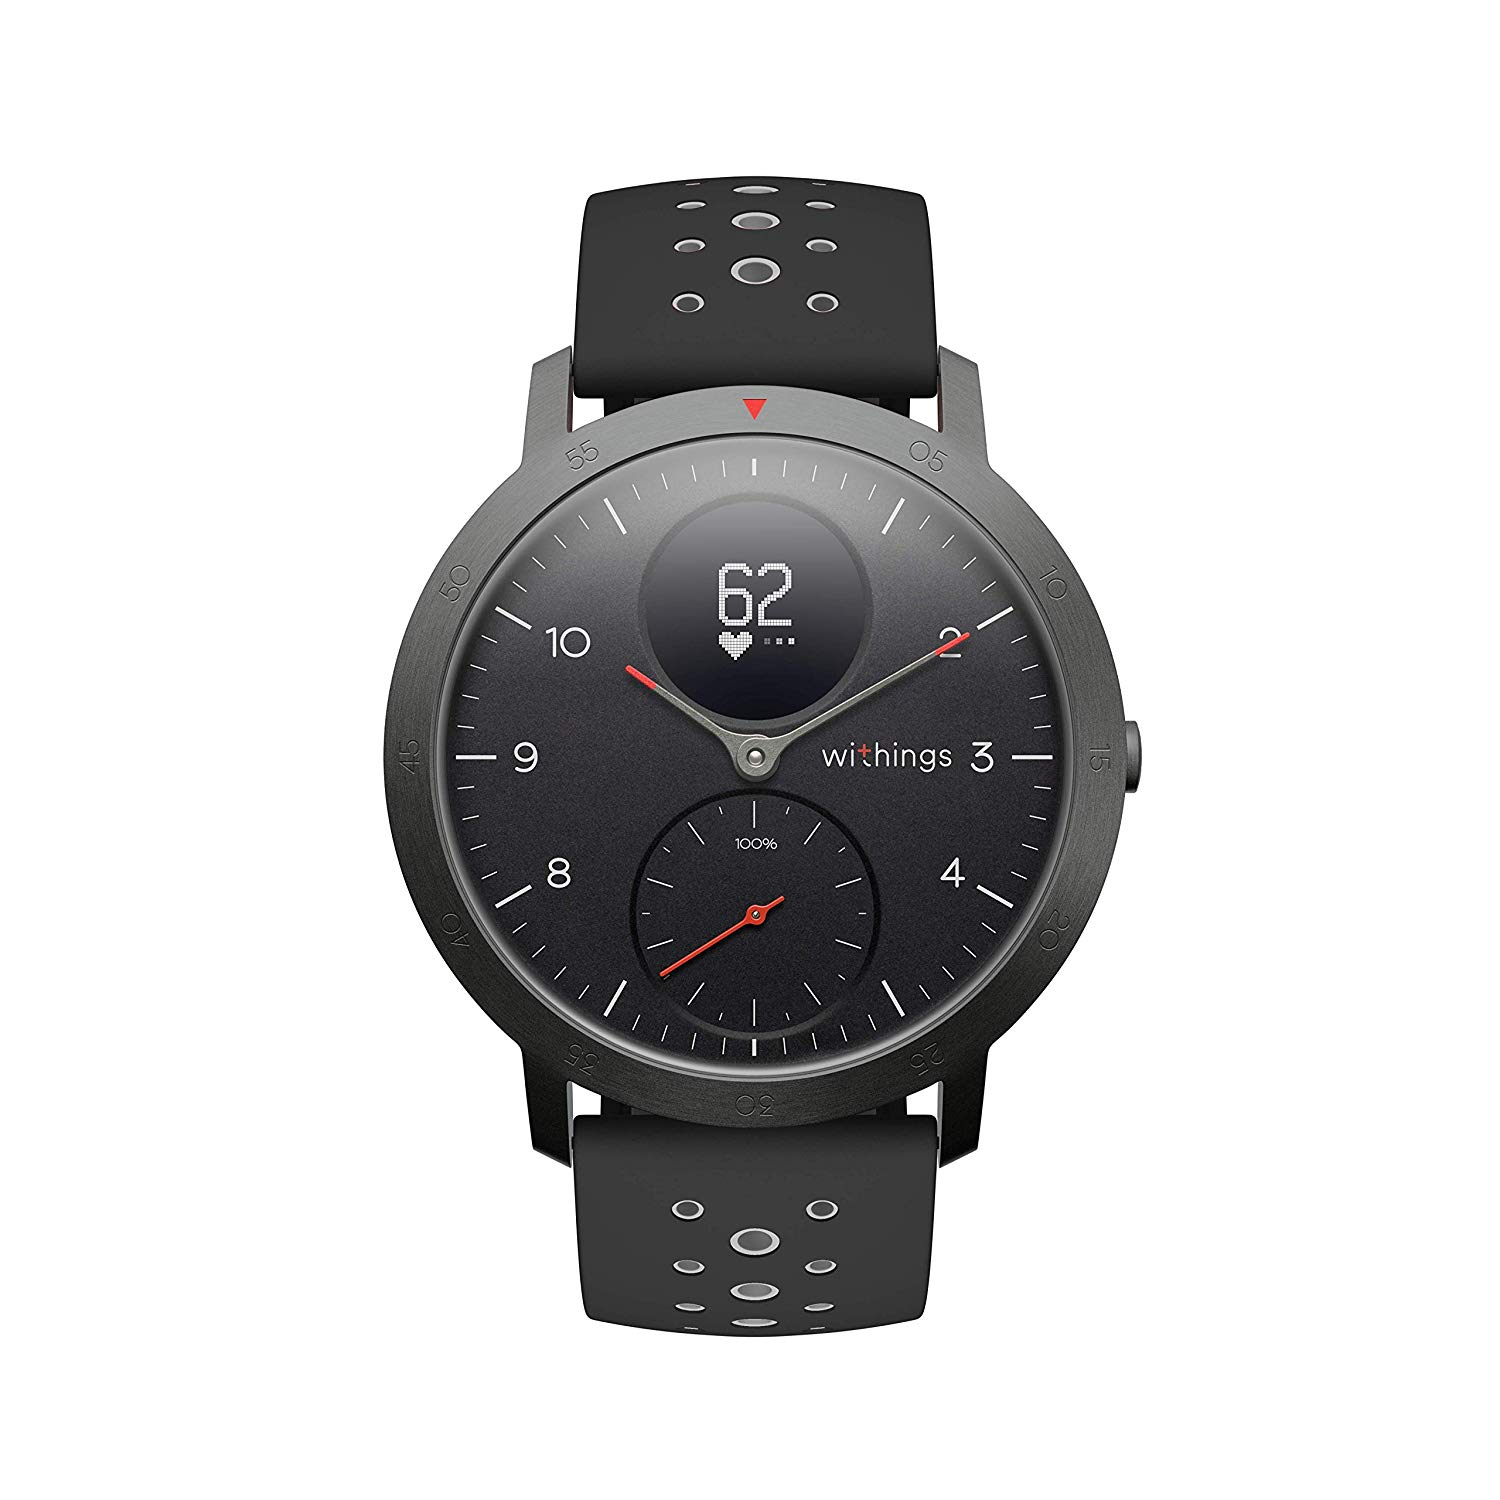 Withings Smartwatch amazon